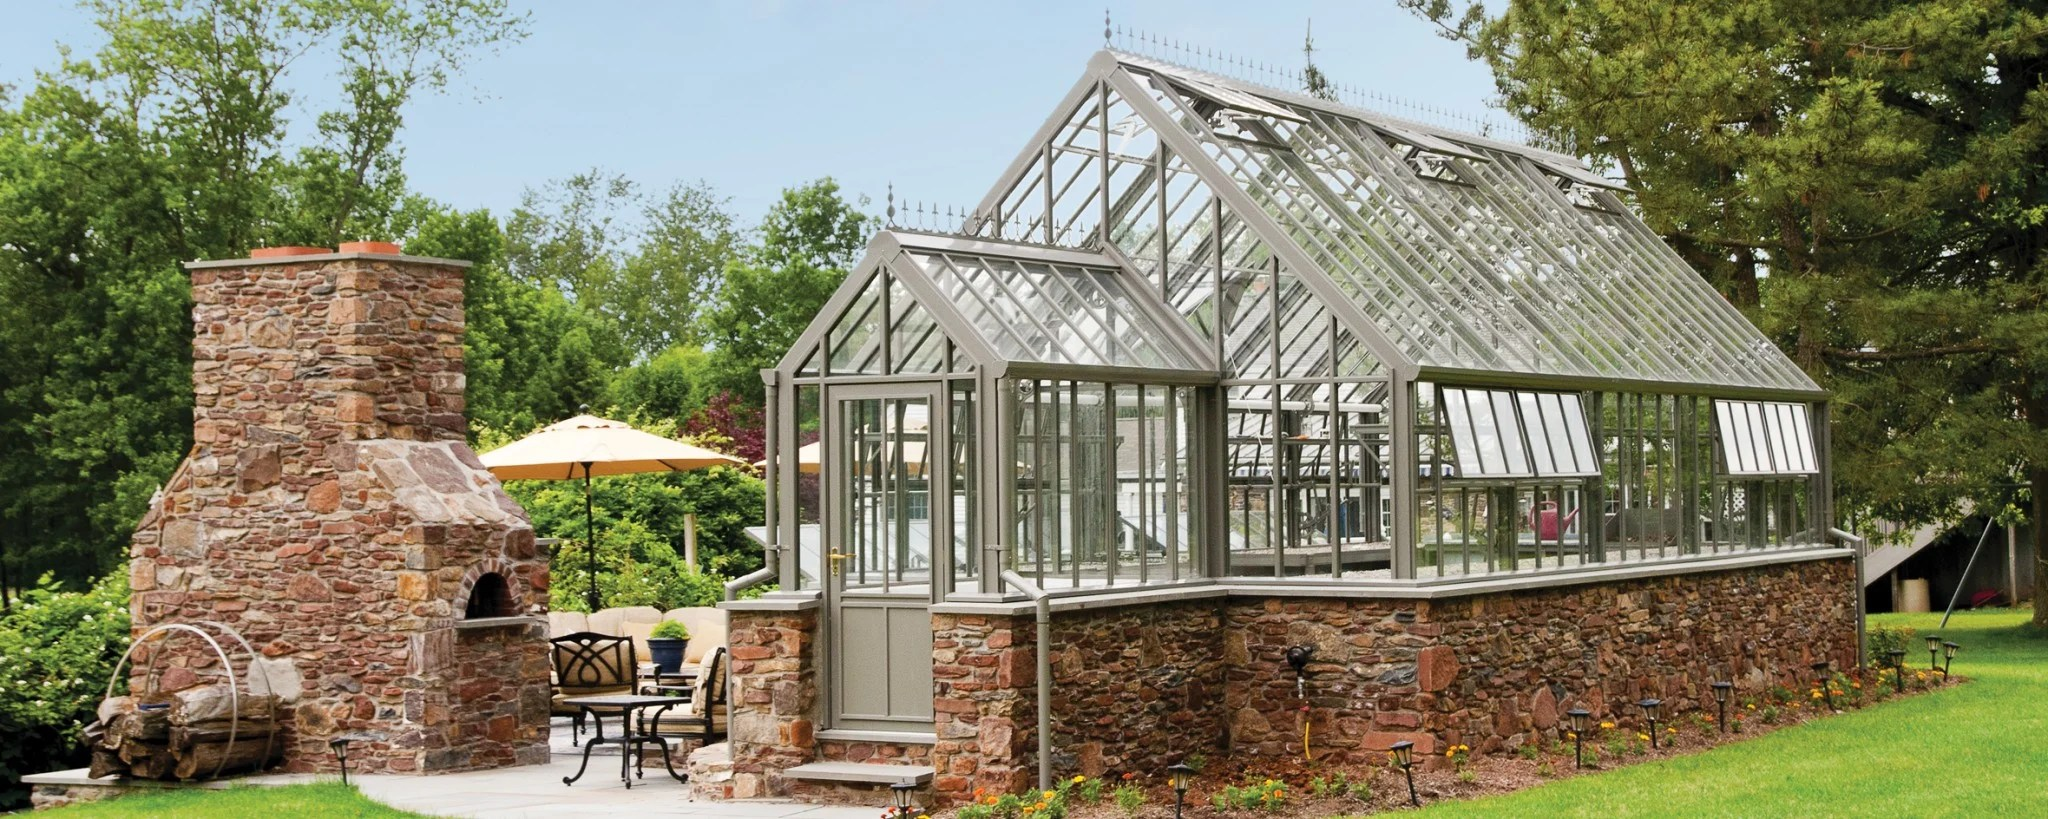 Contemporary Garden Ideas Uk What Is A Bespoke Greenhouse? - Hartley Botanic